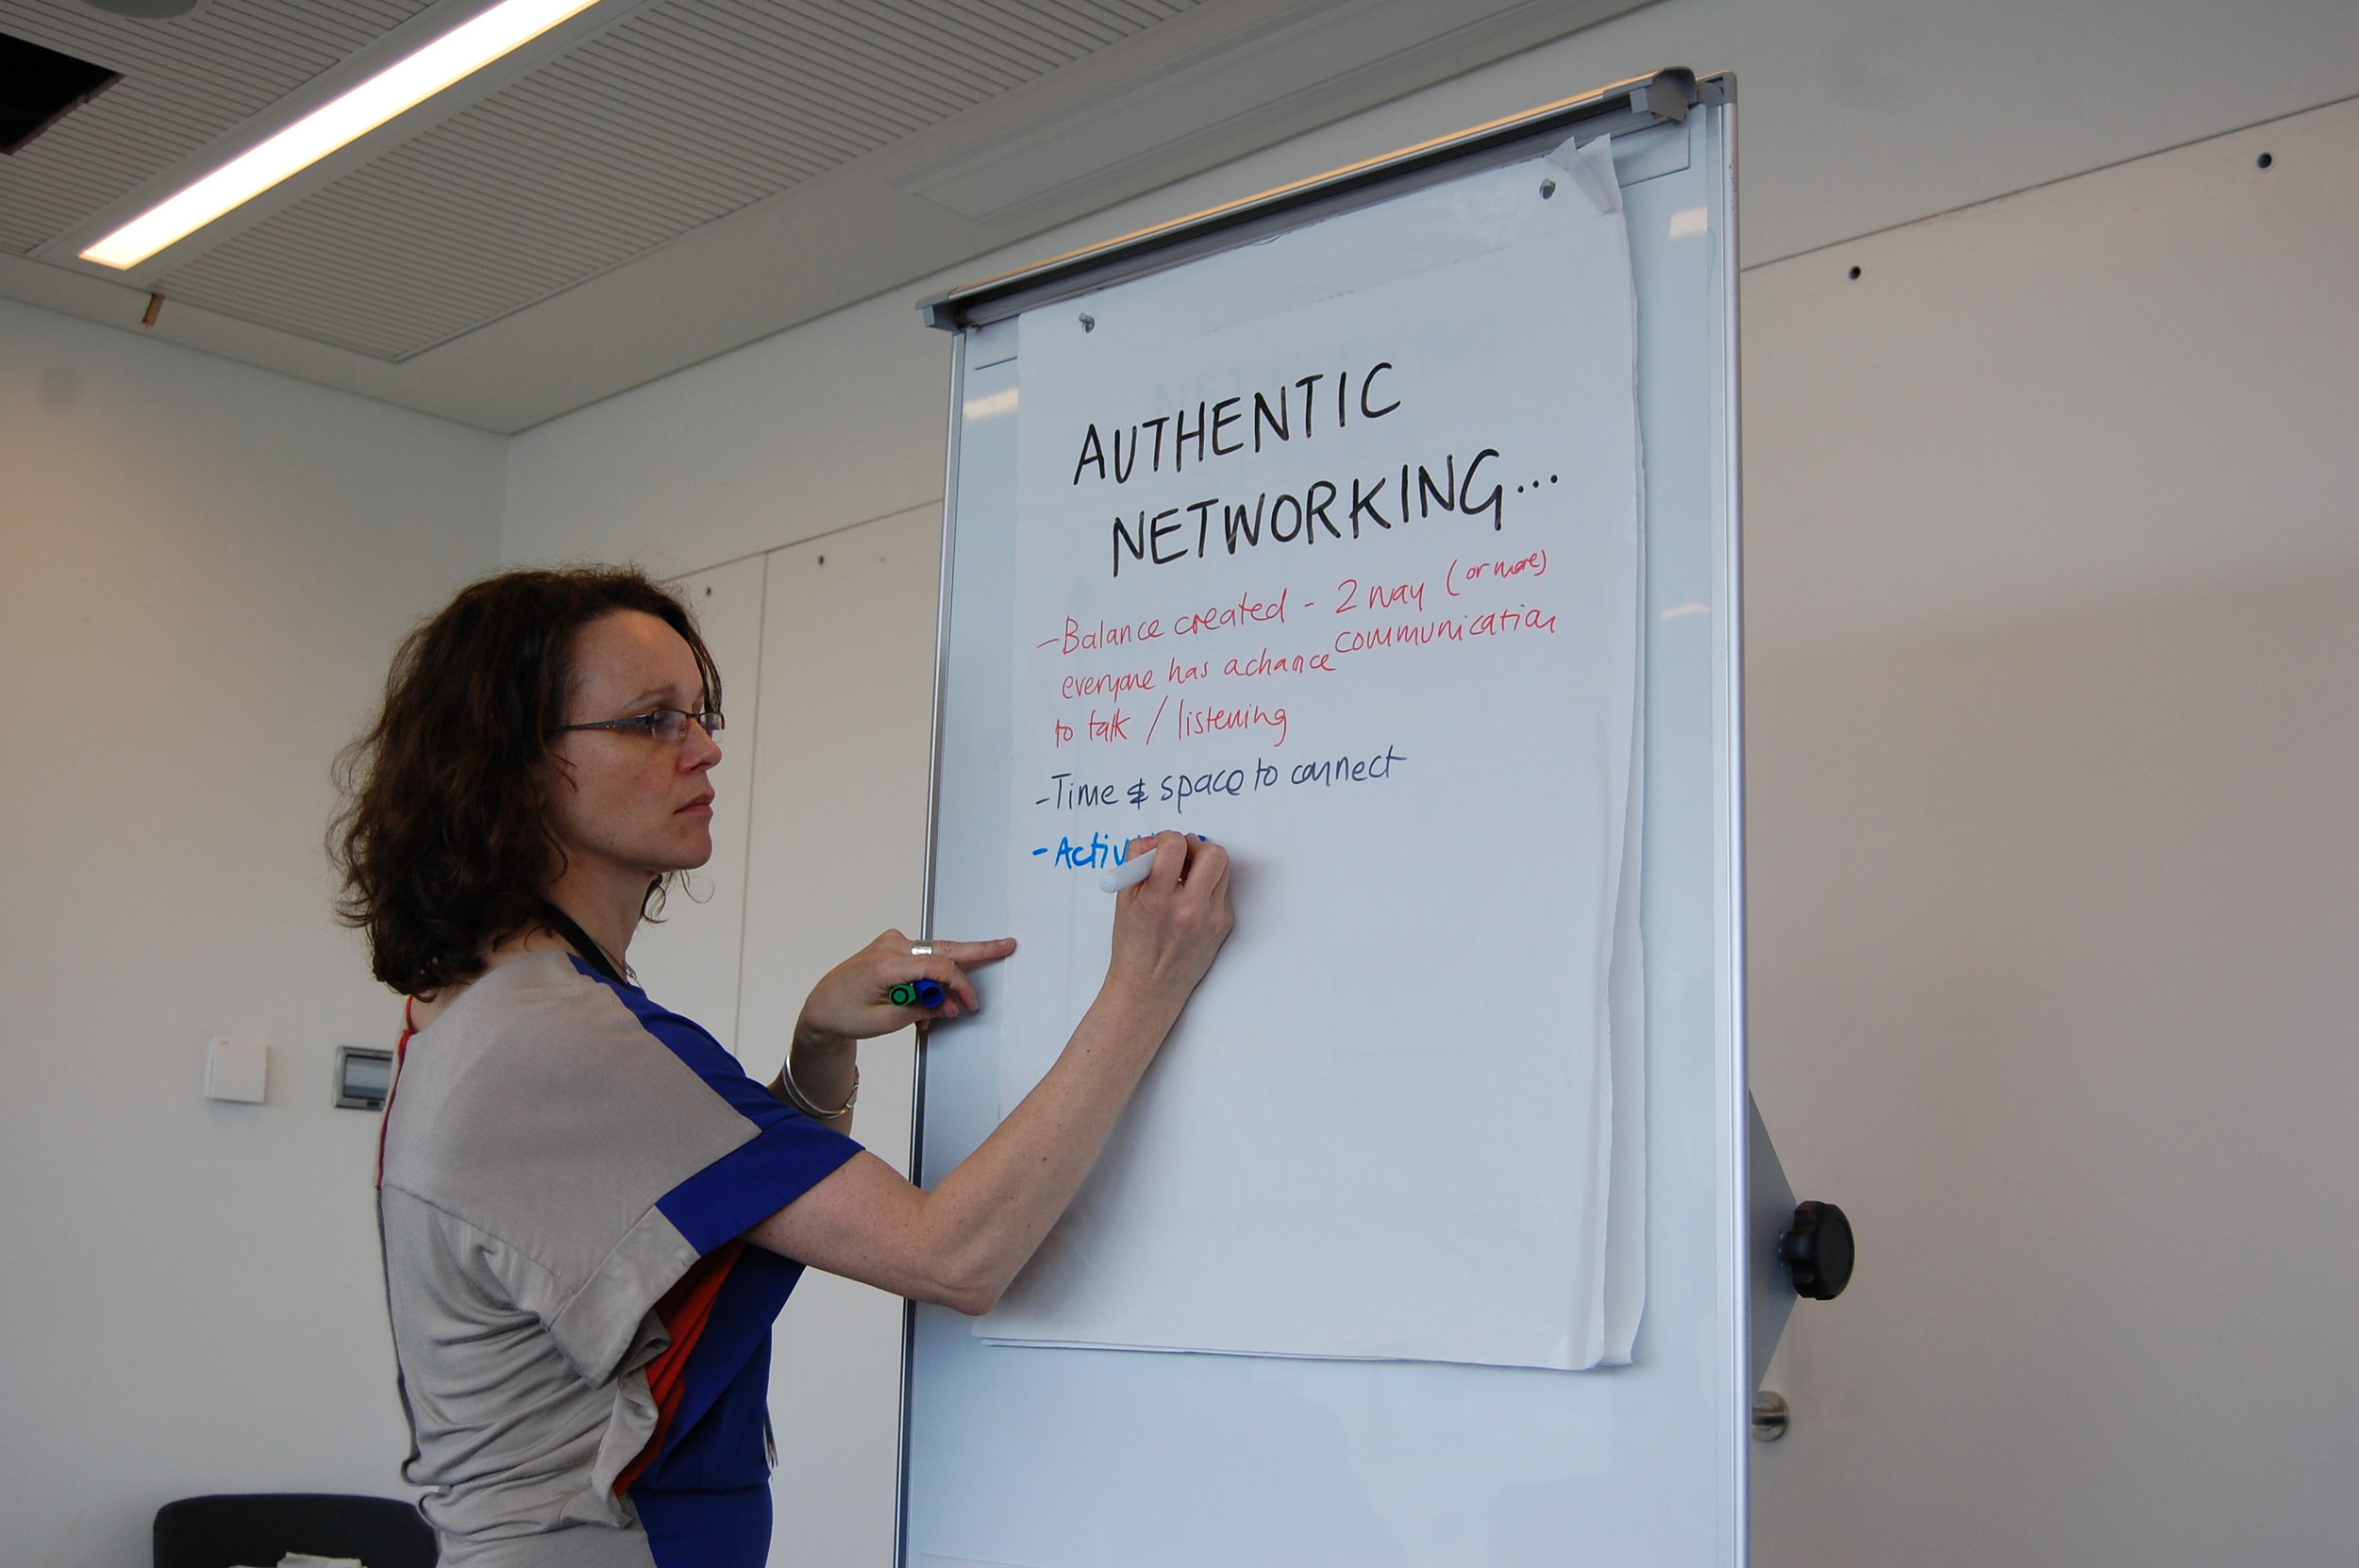 Open_To_Create..._Inspirational_Speaking_authentic_creative_networking_Anna_B_Sexton_photo_murray_-collins.jpg